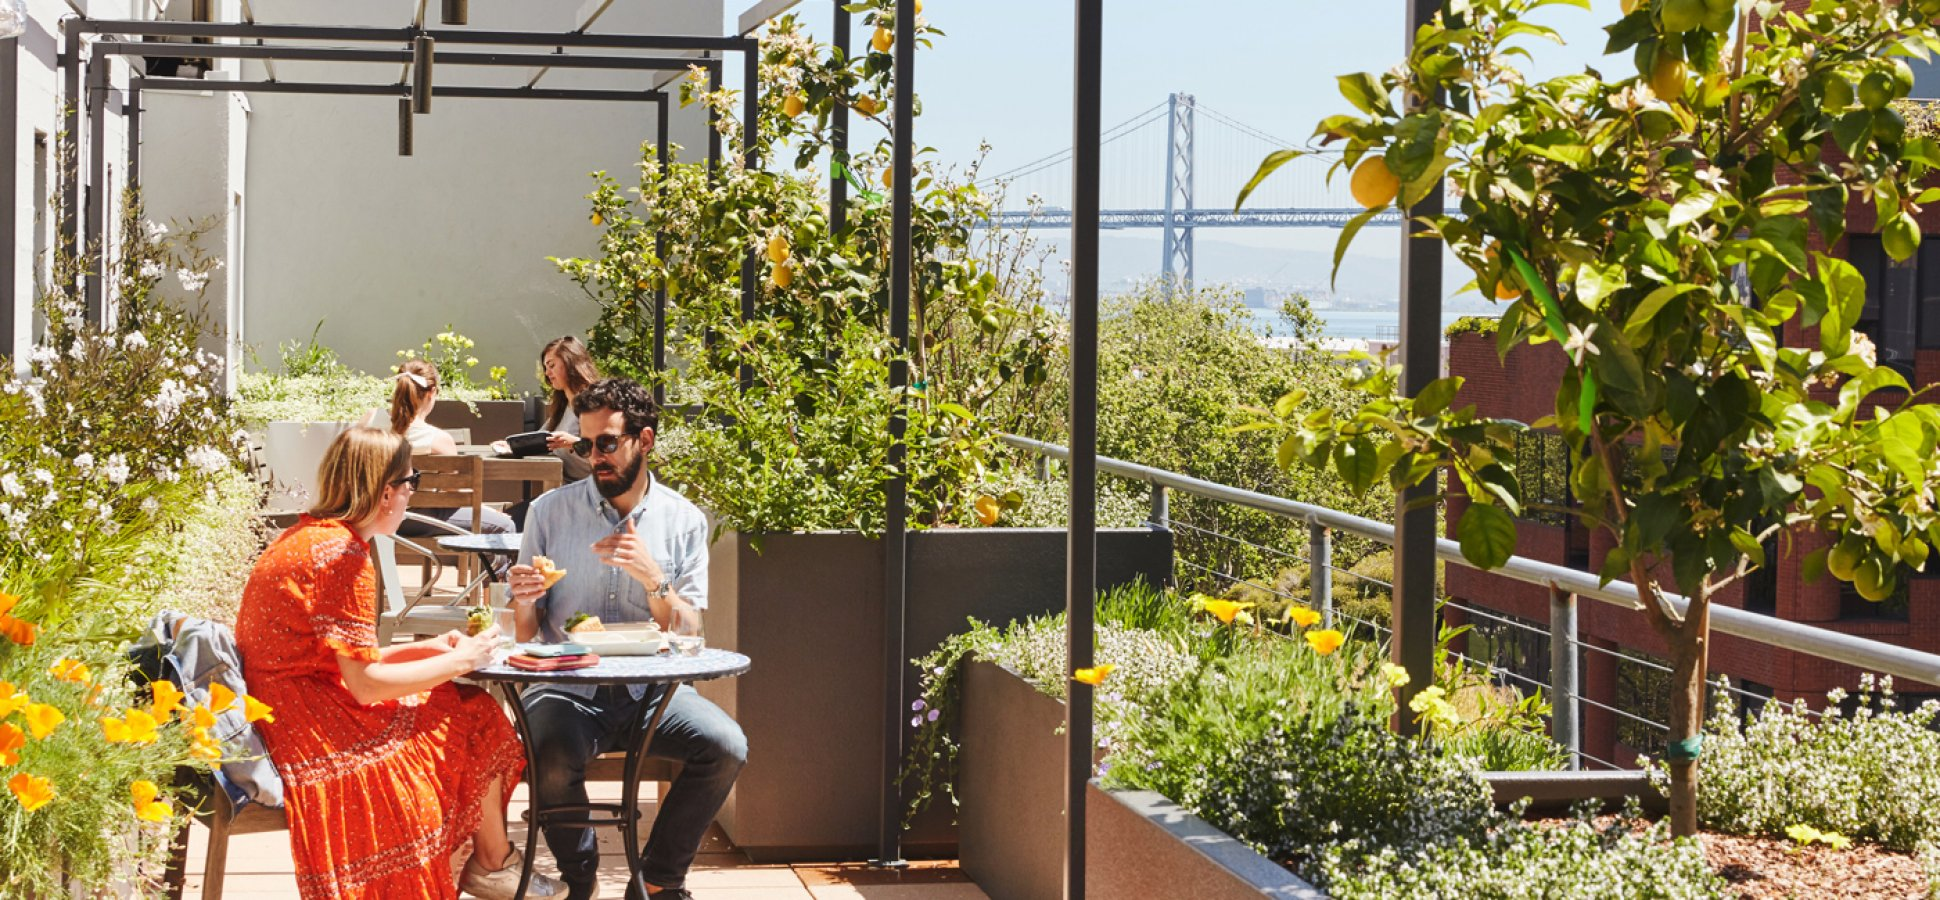 From PayPal to LinkedIn, These Are the Coolest Outdoor Workspaces of 2019